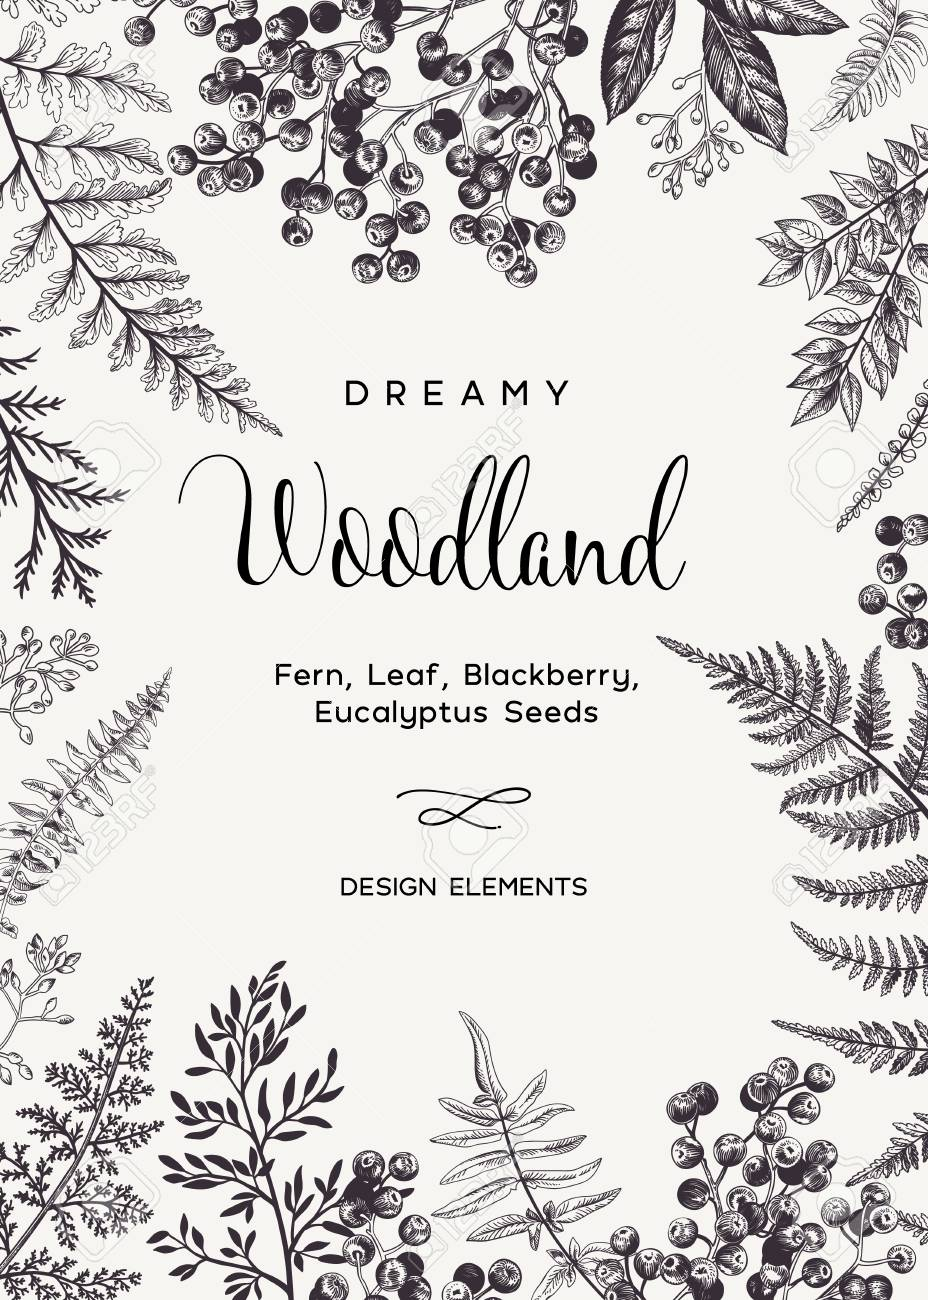 Vintage card with fern leaves and black berries. Wedding invitation. Engraving style. Botanical illustration. Design elements. Vector. Black and white. - 126207006